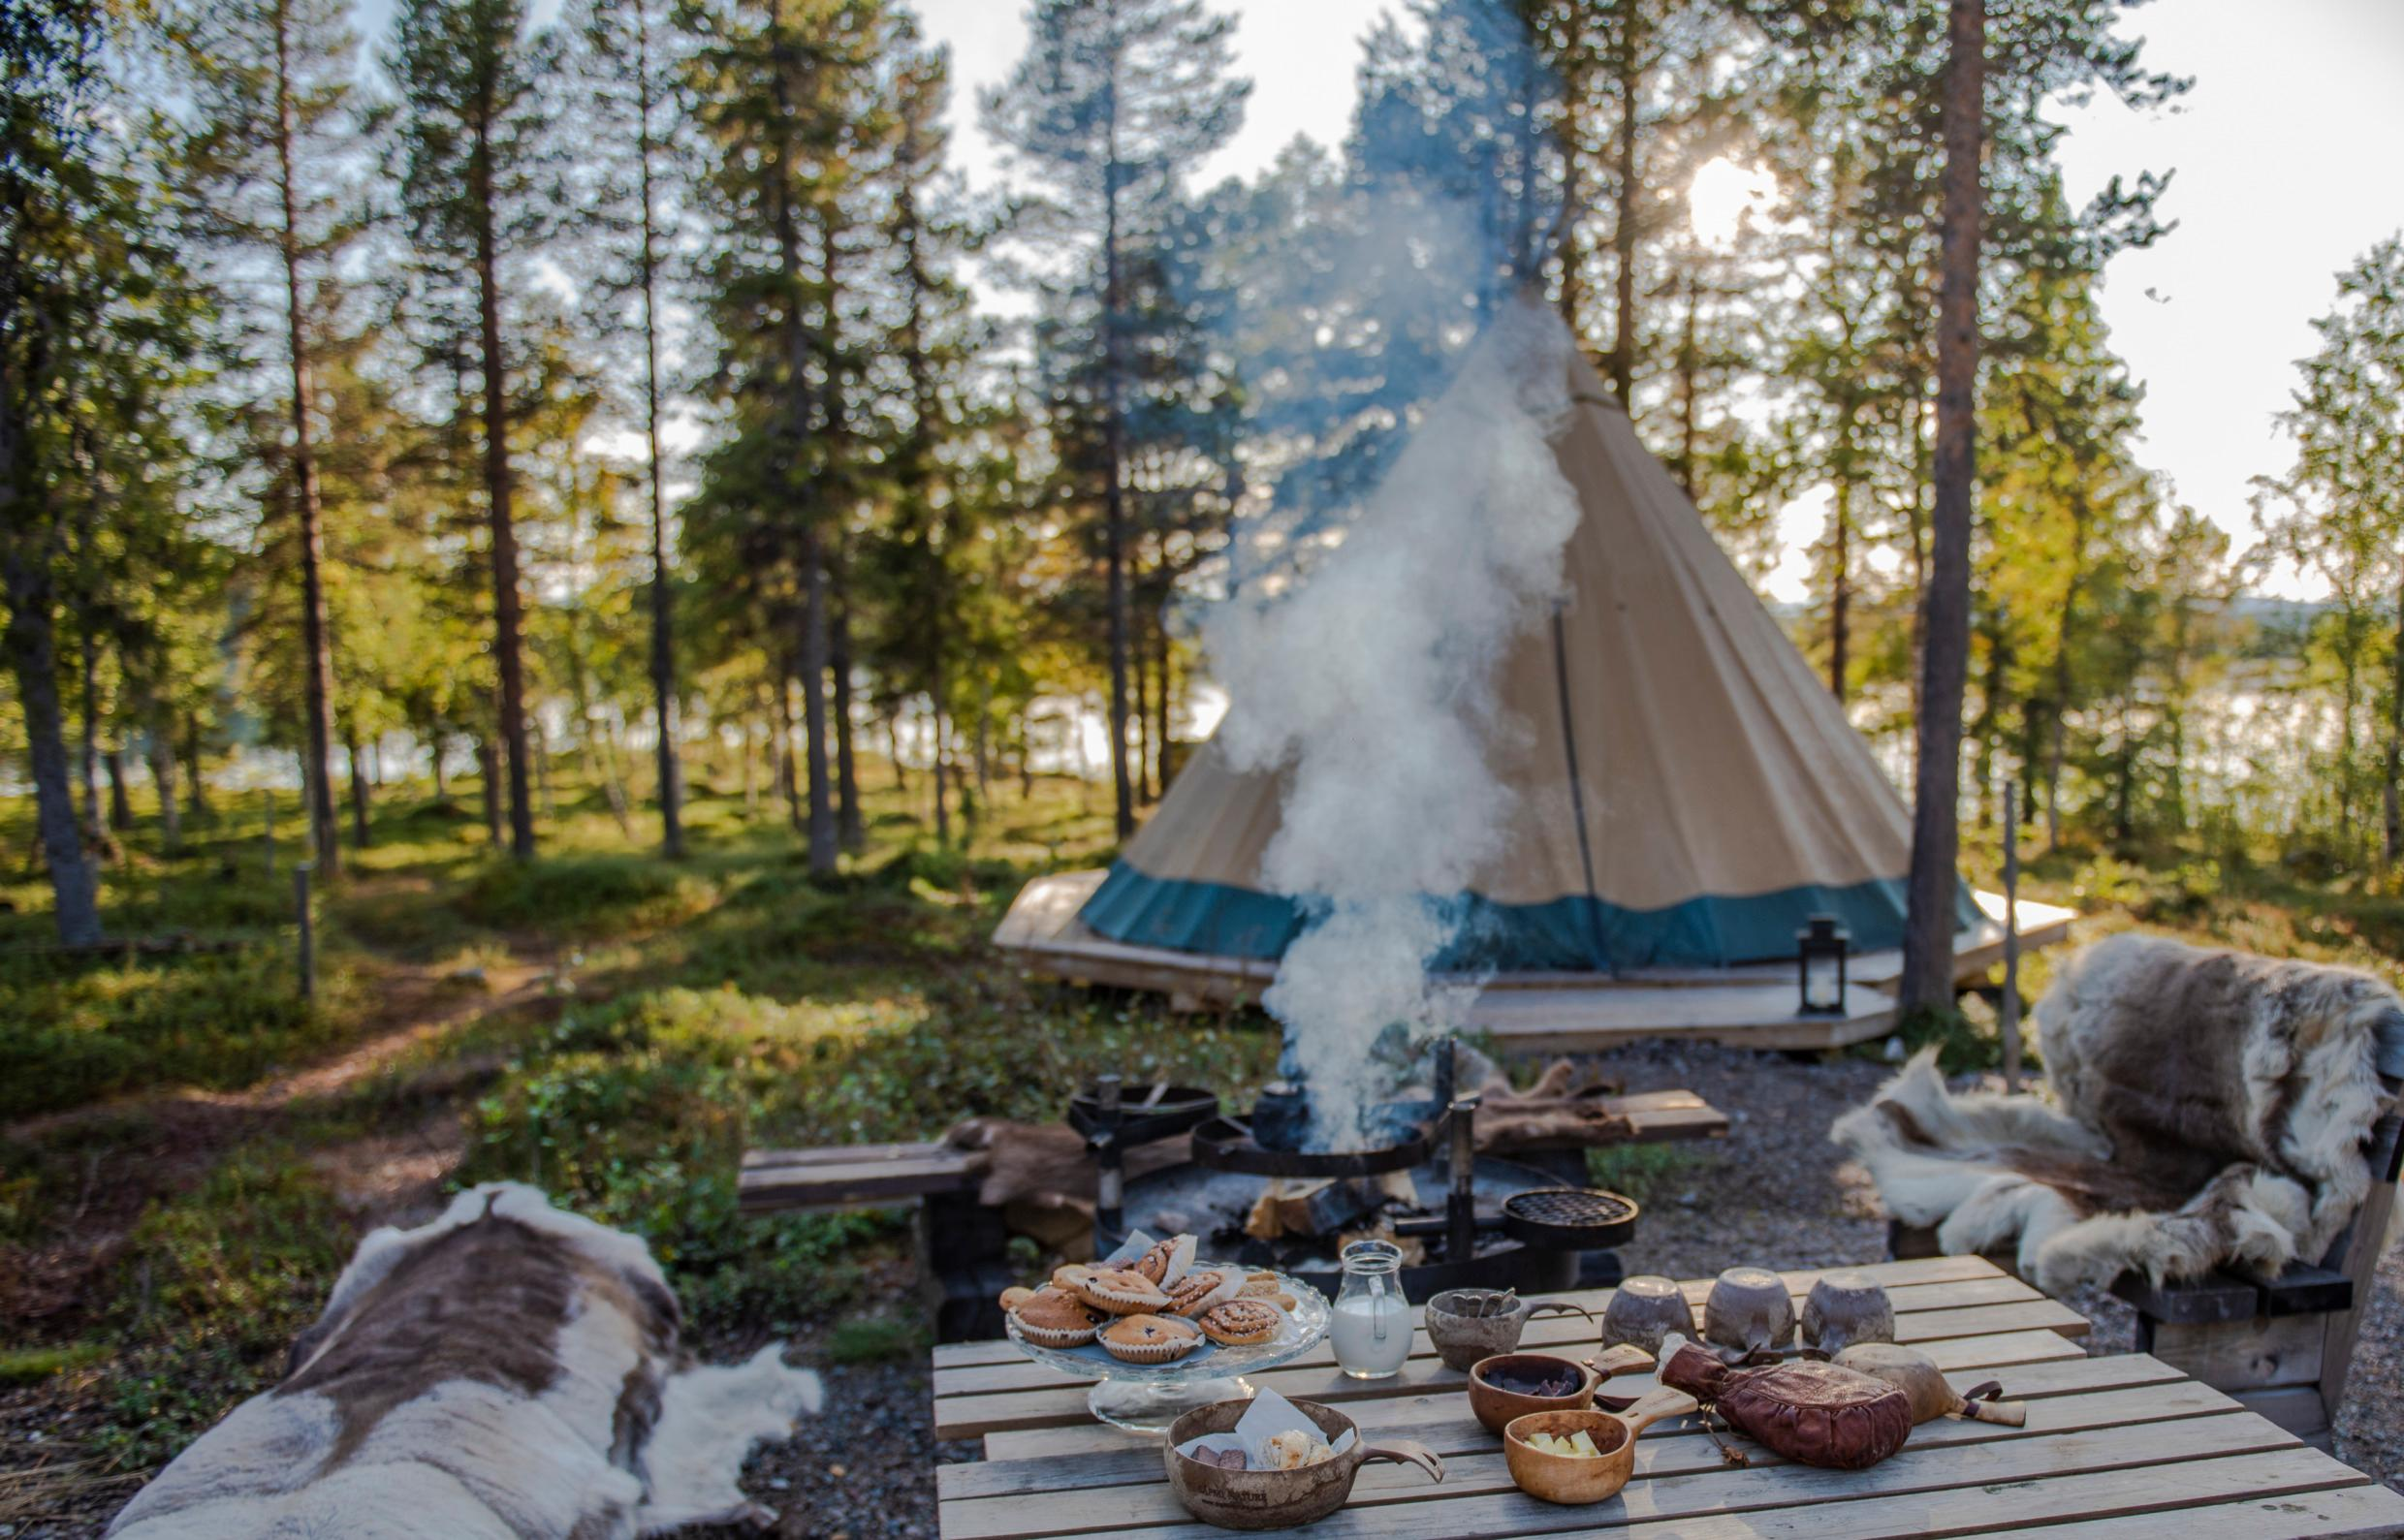 Benches covered in reindeer hides next to a table set with cups and bowls and a plate with buns. A coffee pot is placed over a campfire. A lavvu tent in the background and you get a glimpse of a lake between the trees.